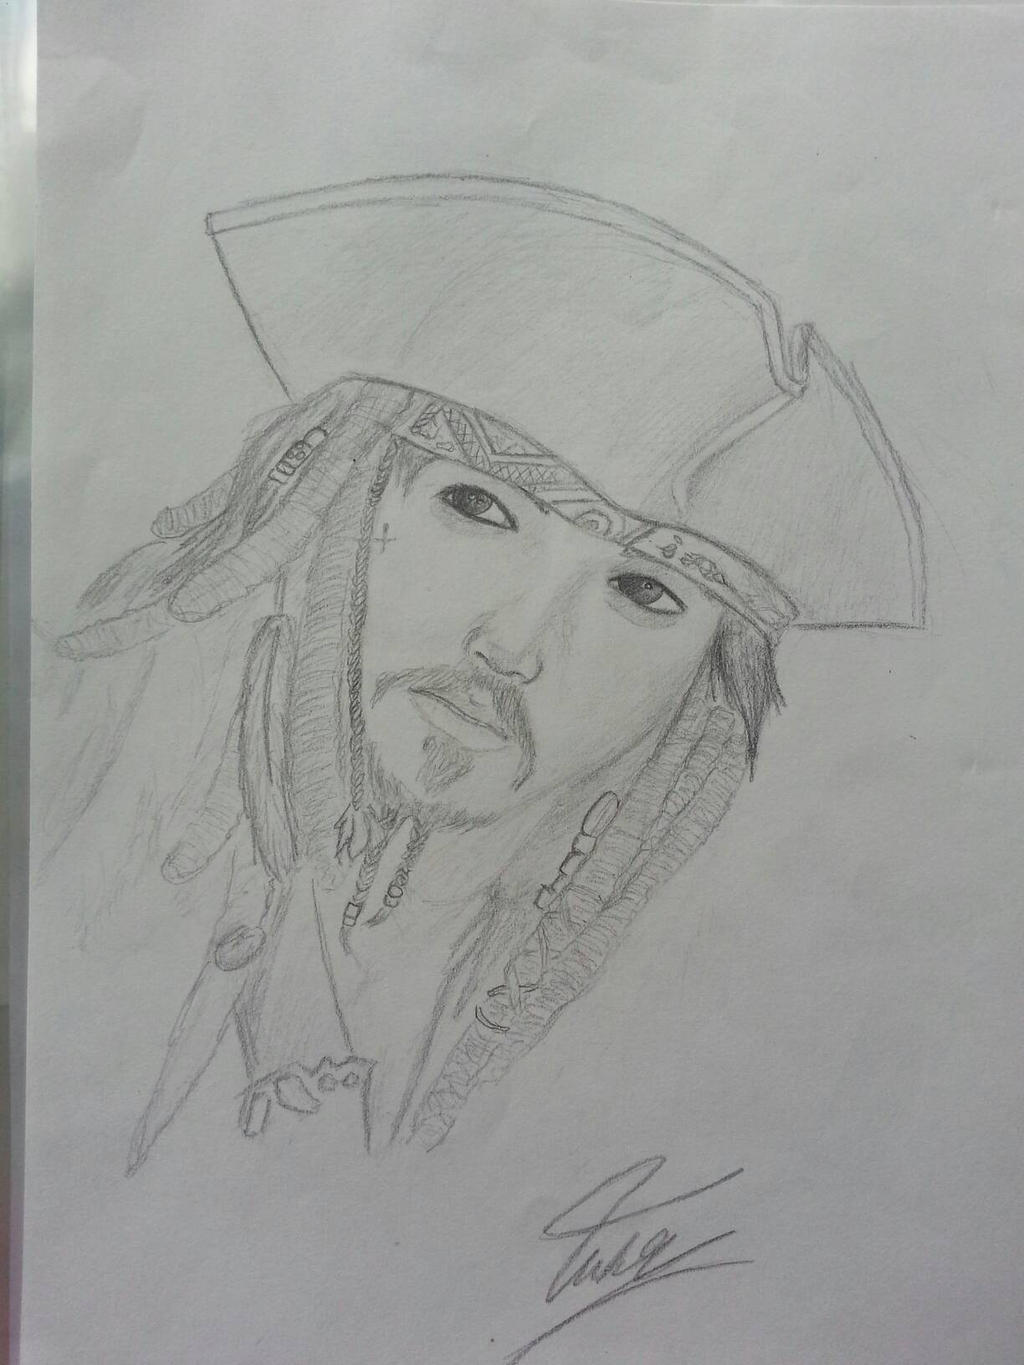 jack sparrow by WhiteWolf737